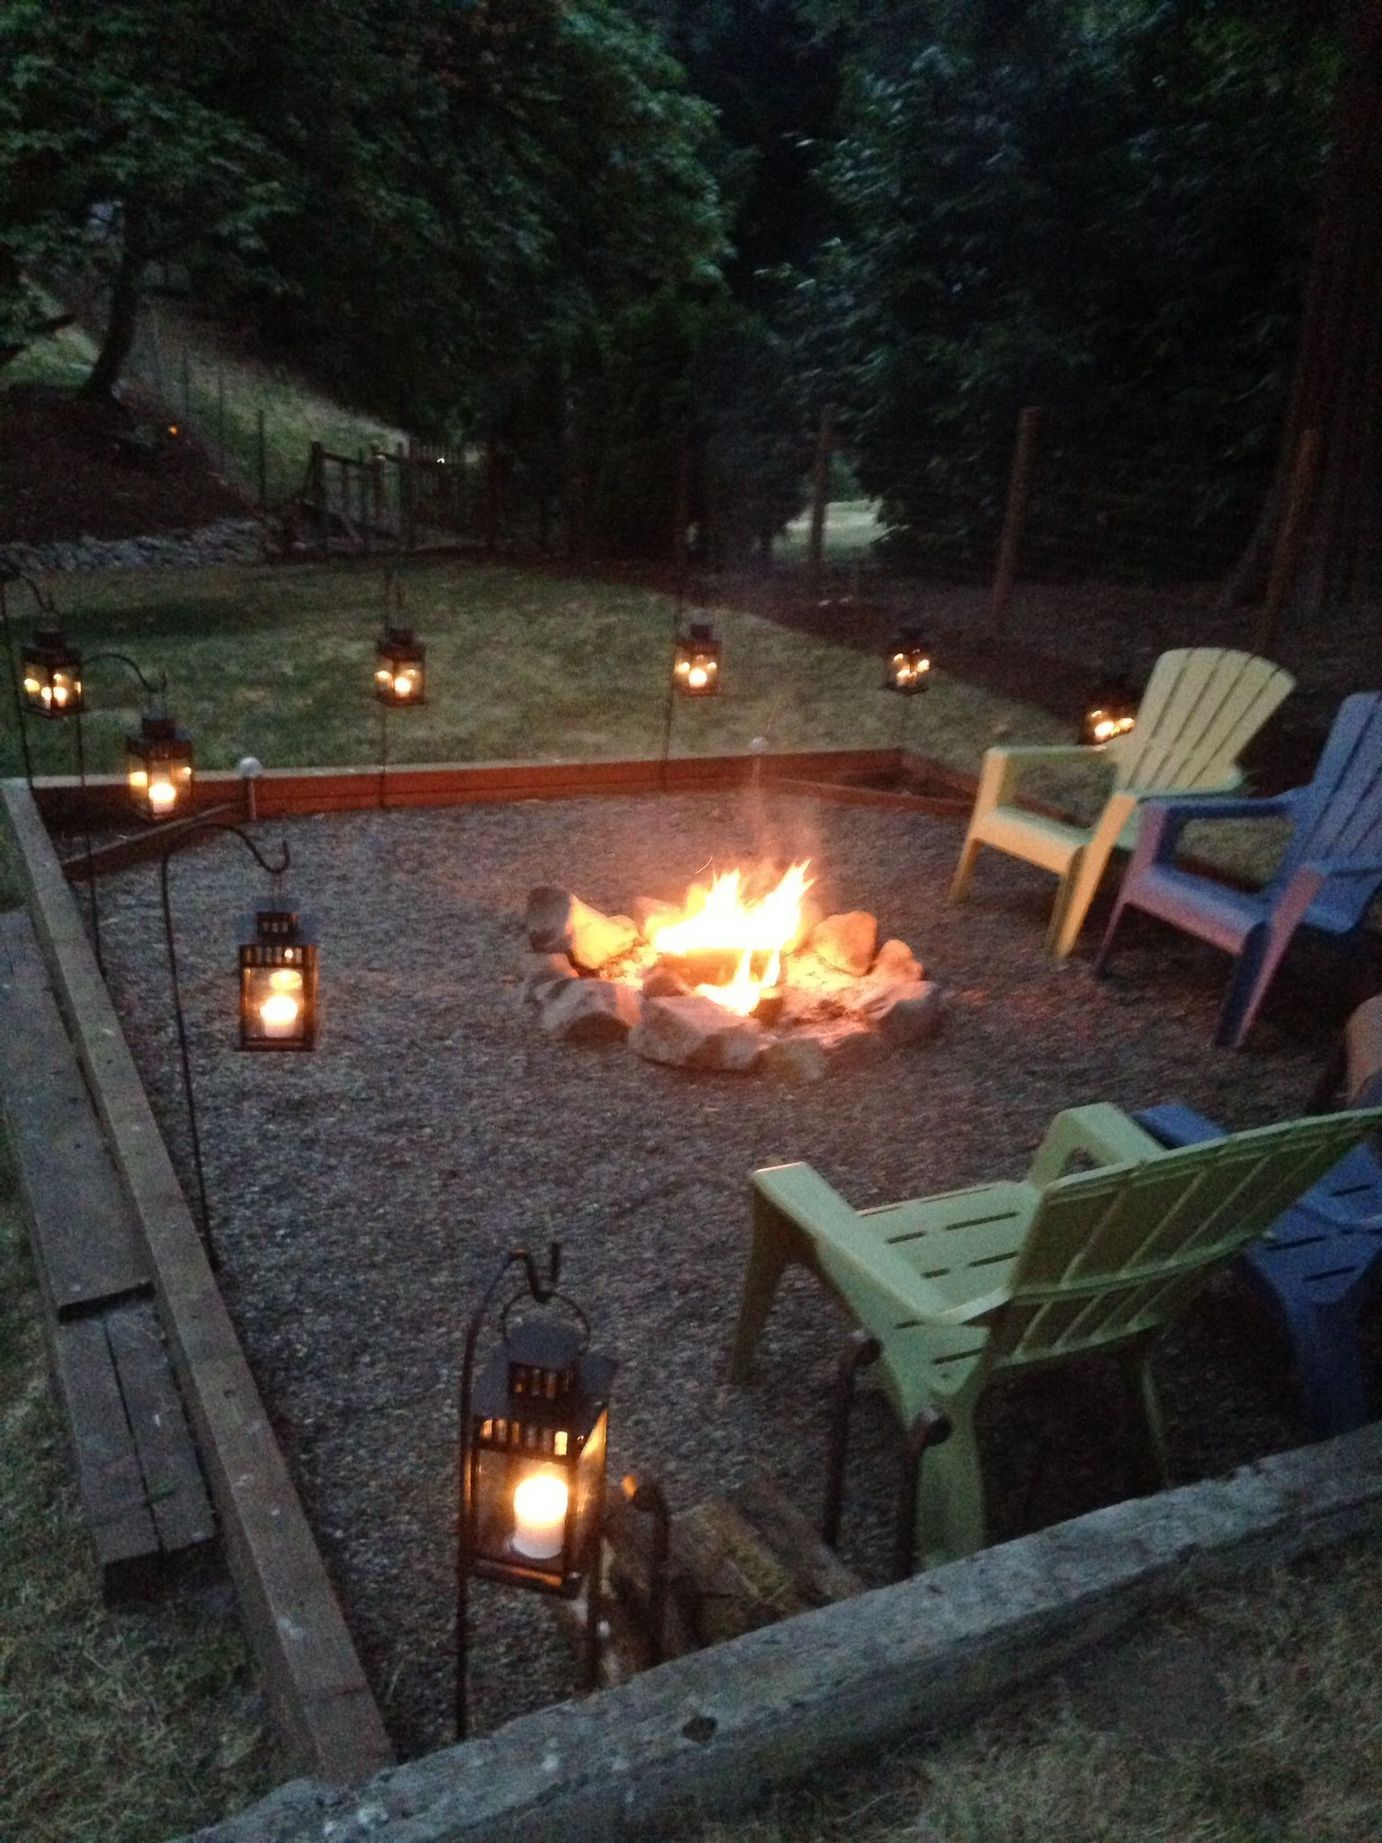 70 Awesome Fire Pit Plans Ideas To Make Happy With Your Family intended for dimensions 1382 X 1843